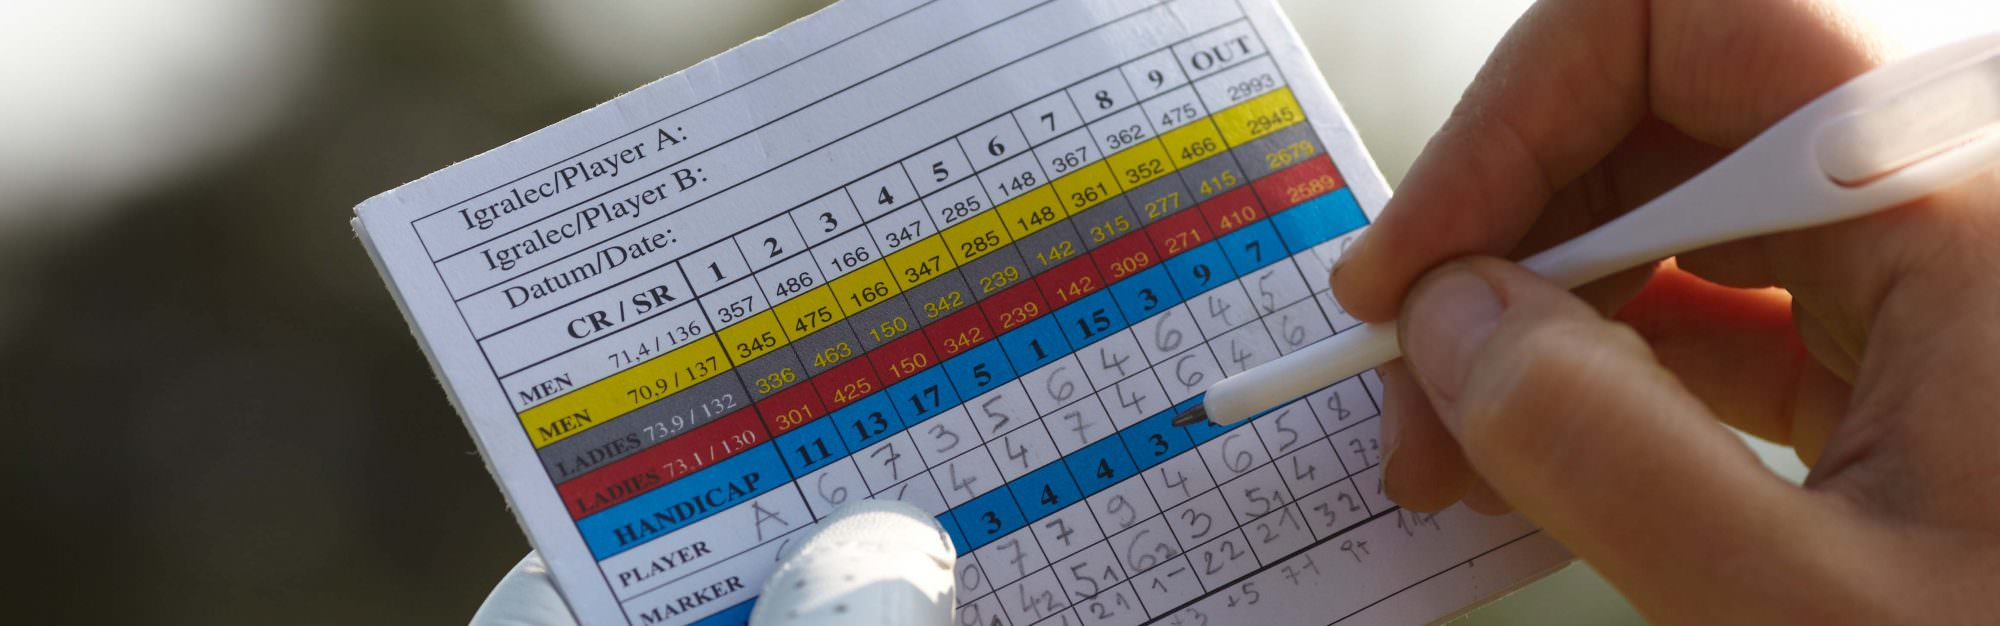 How does your handicap change from course to course under the World Handicap System?